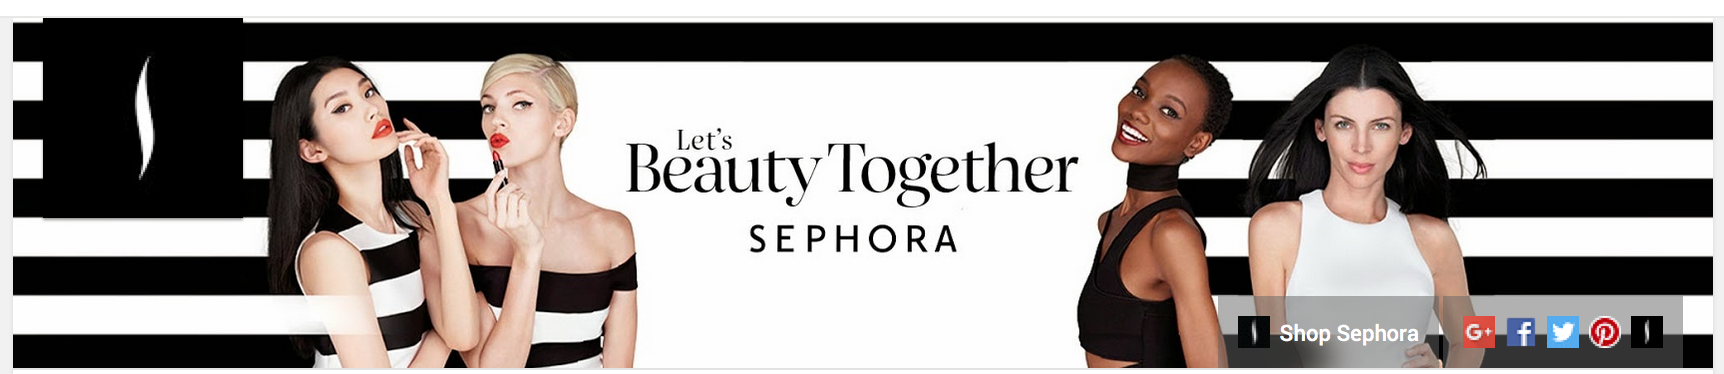 Sephora YouTube Banner